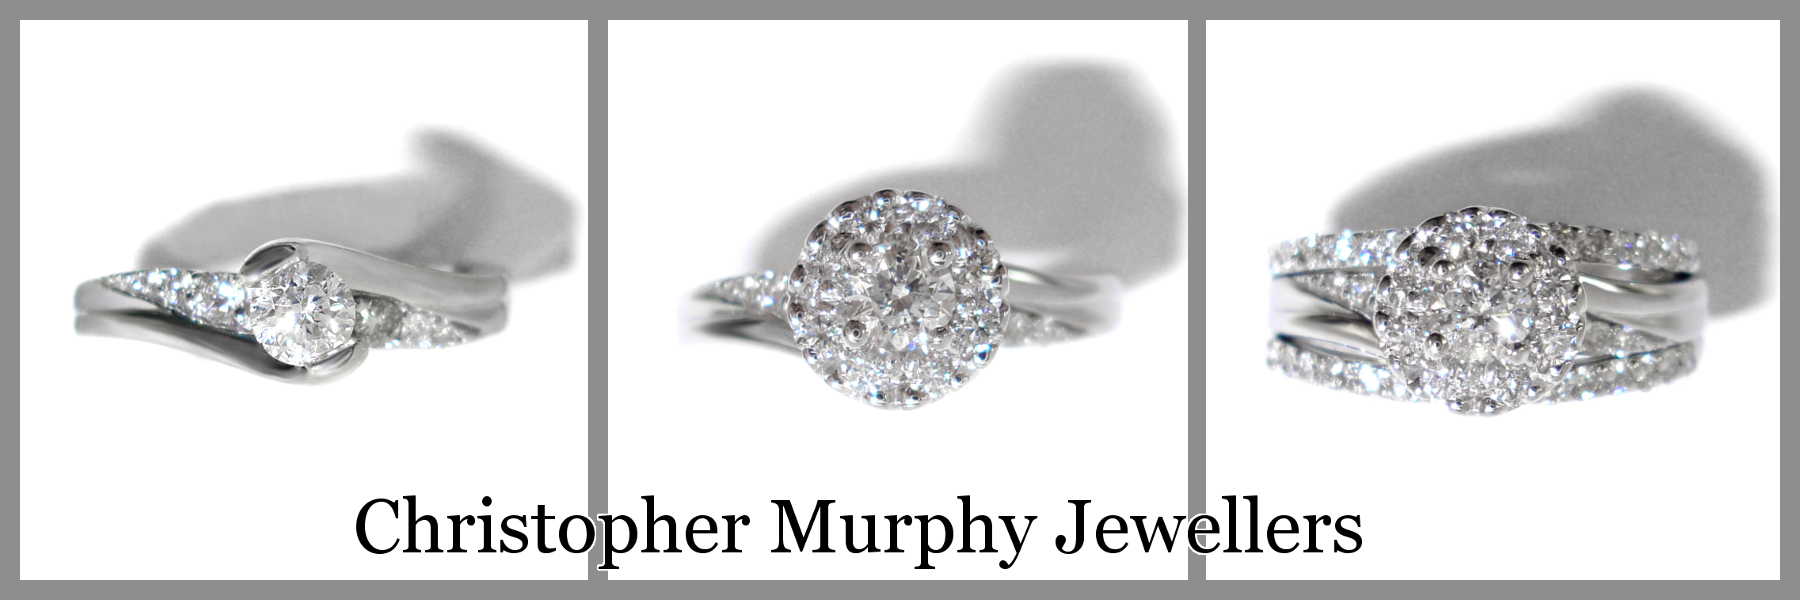 customers wow wedding into double your up made murphy halo eternity rings a christopher was and ring the jewellers full functional